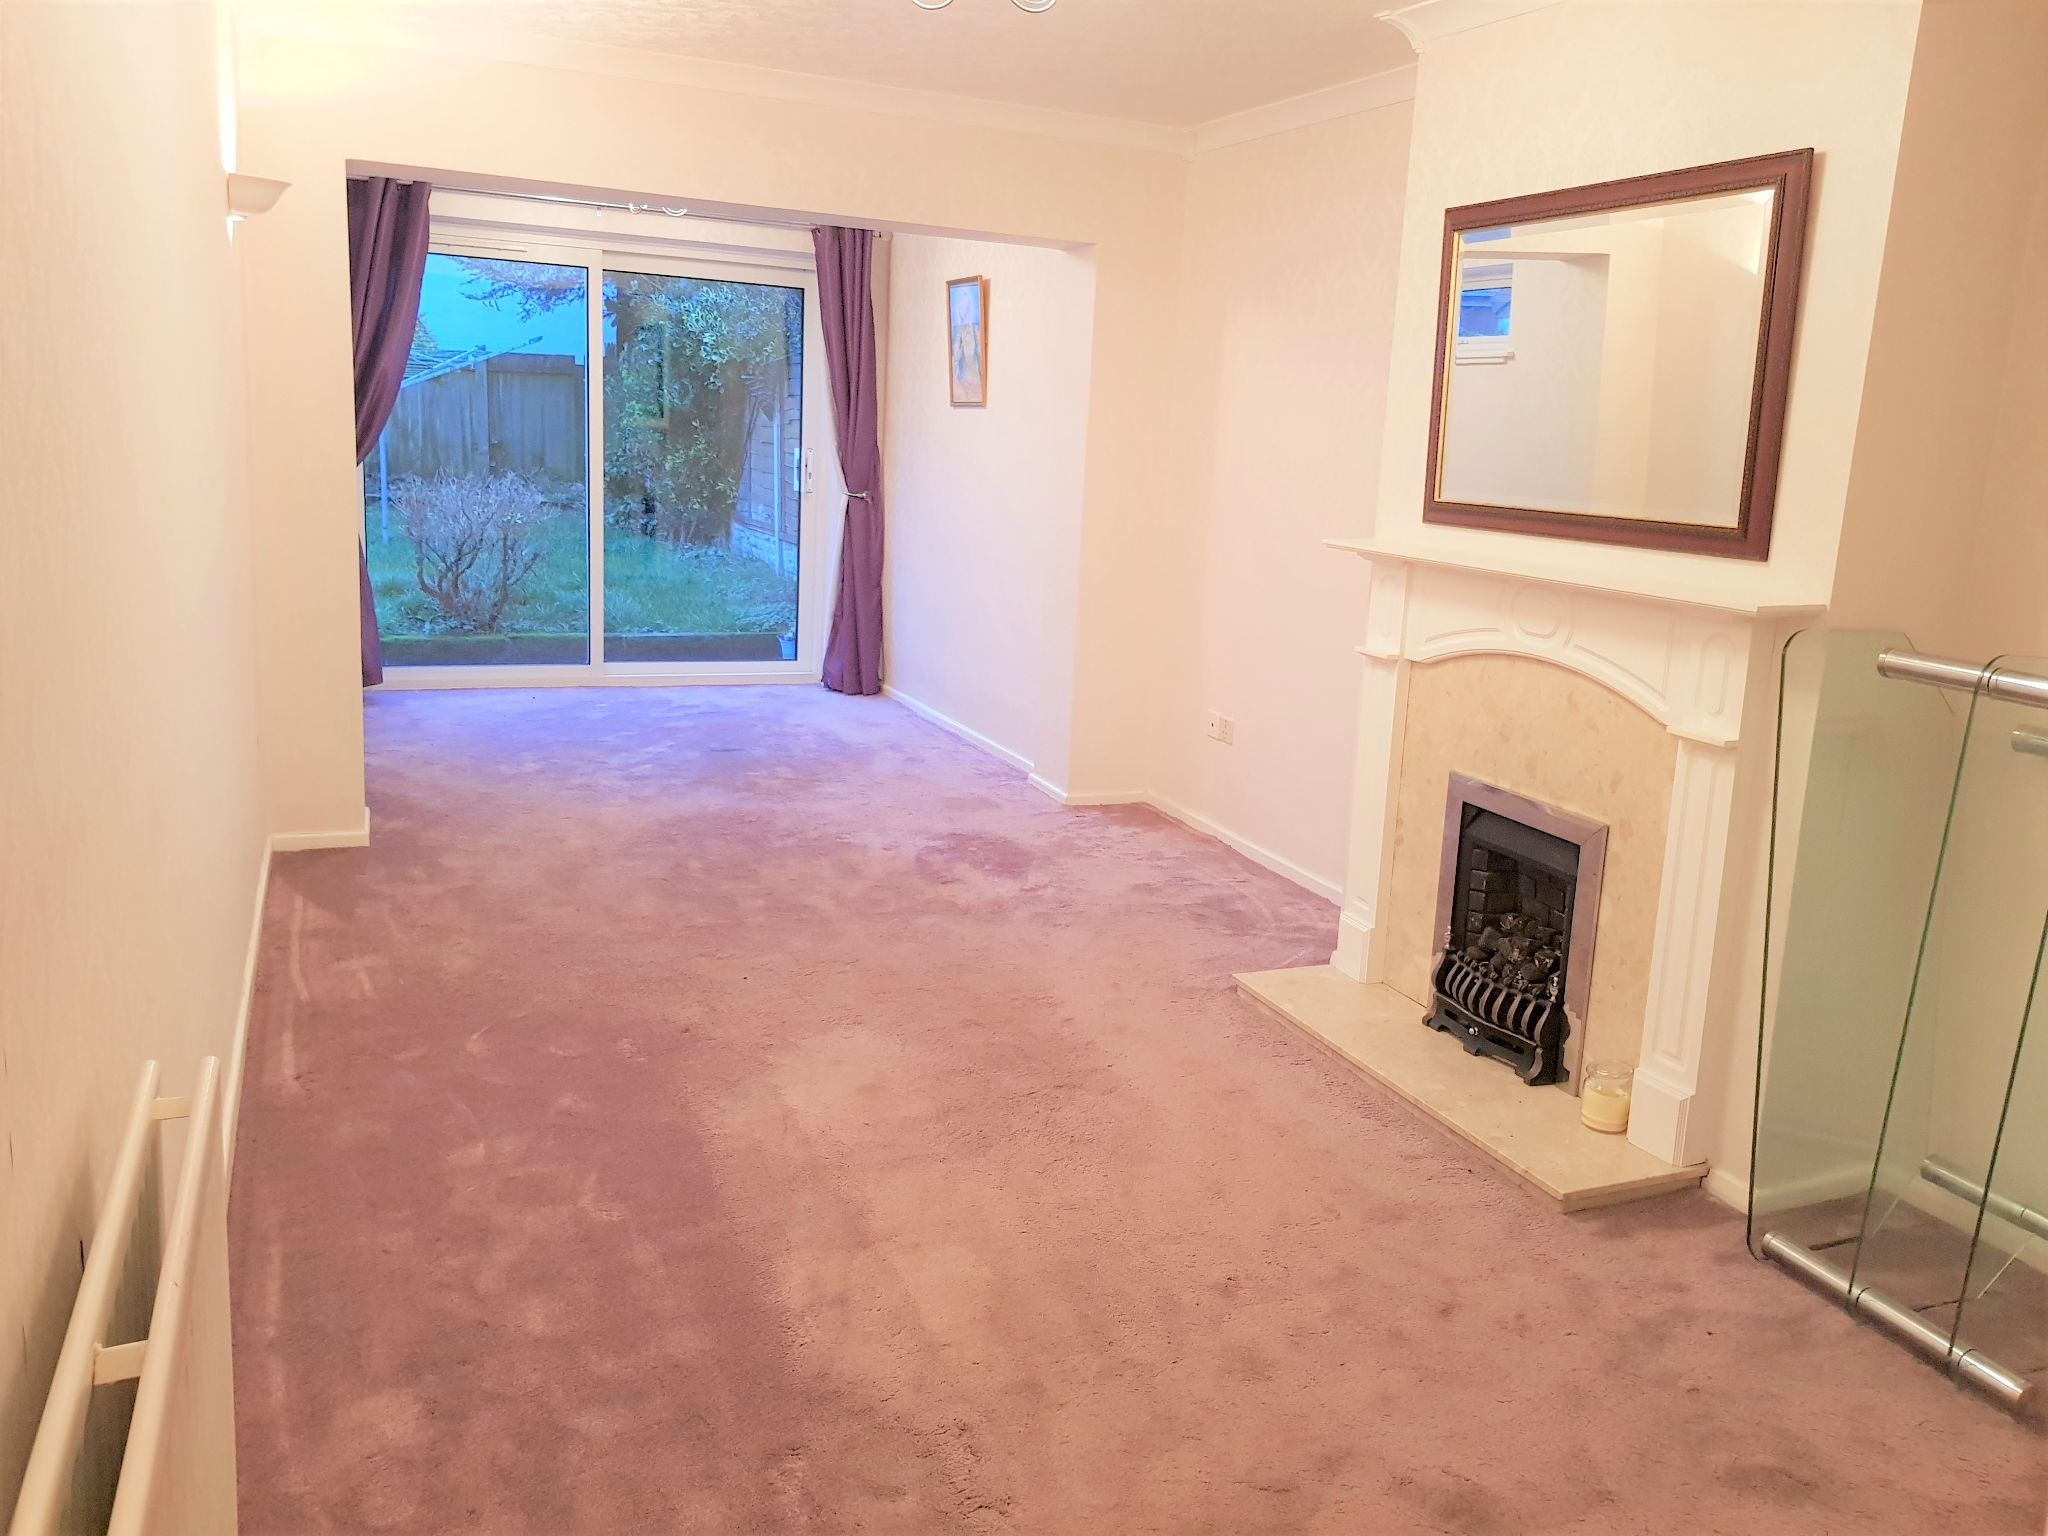 3 Bed Semi-detached House To Rent - Reception Room